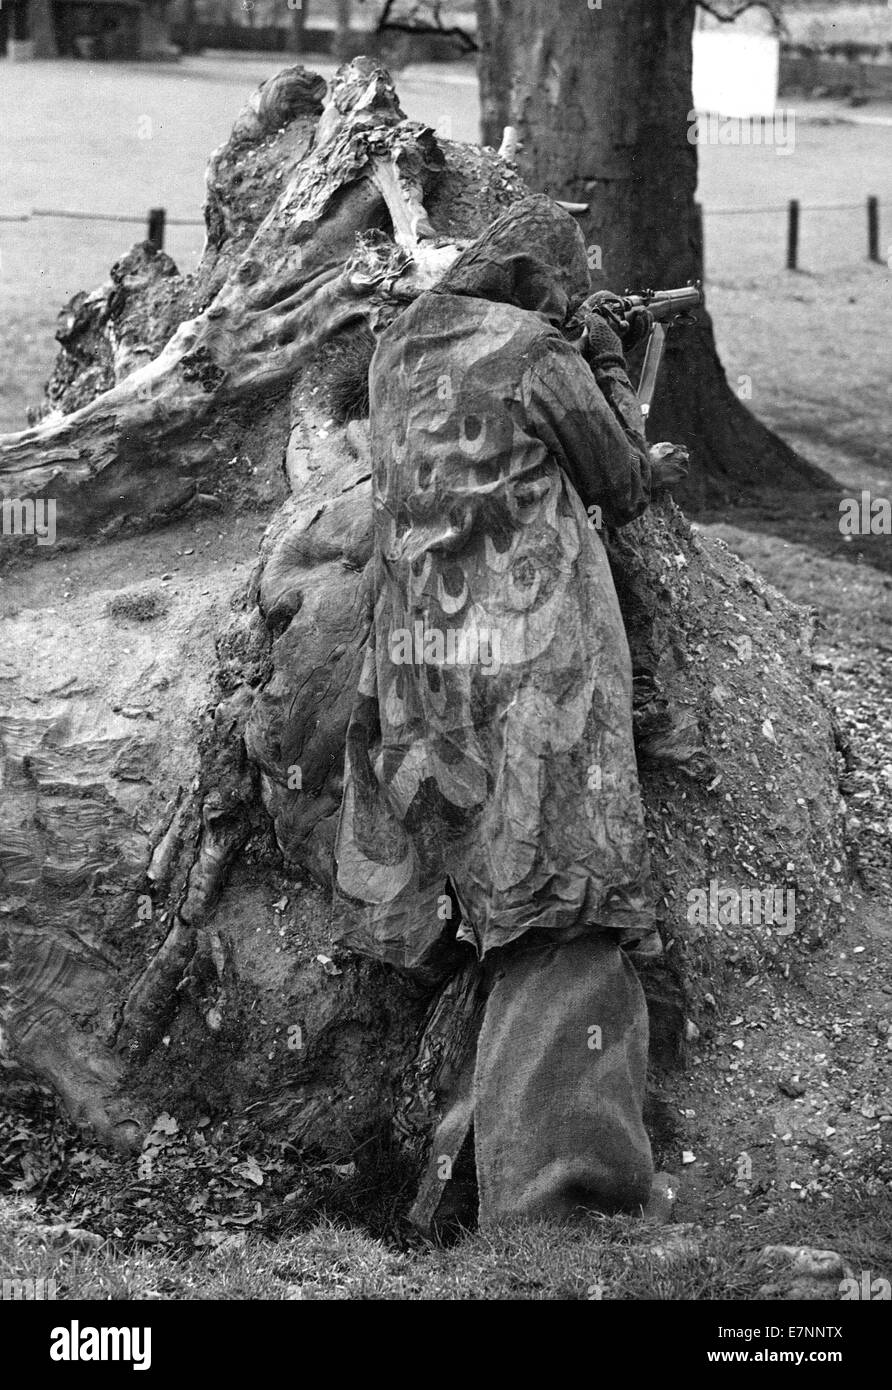 British army sniper of WW11 in full camouflage - Stock Image